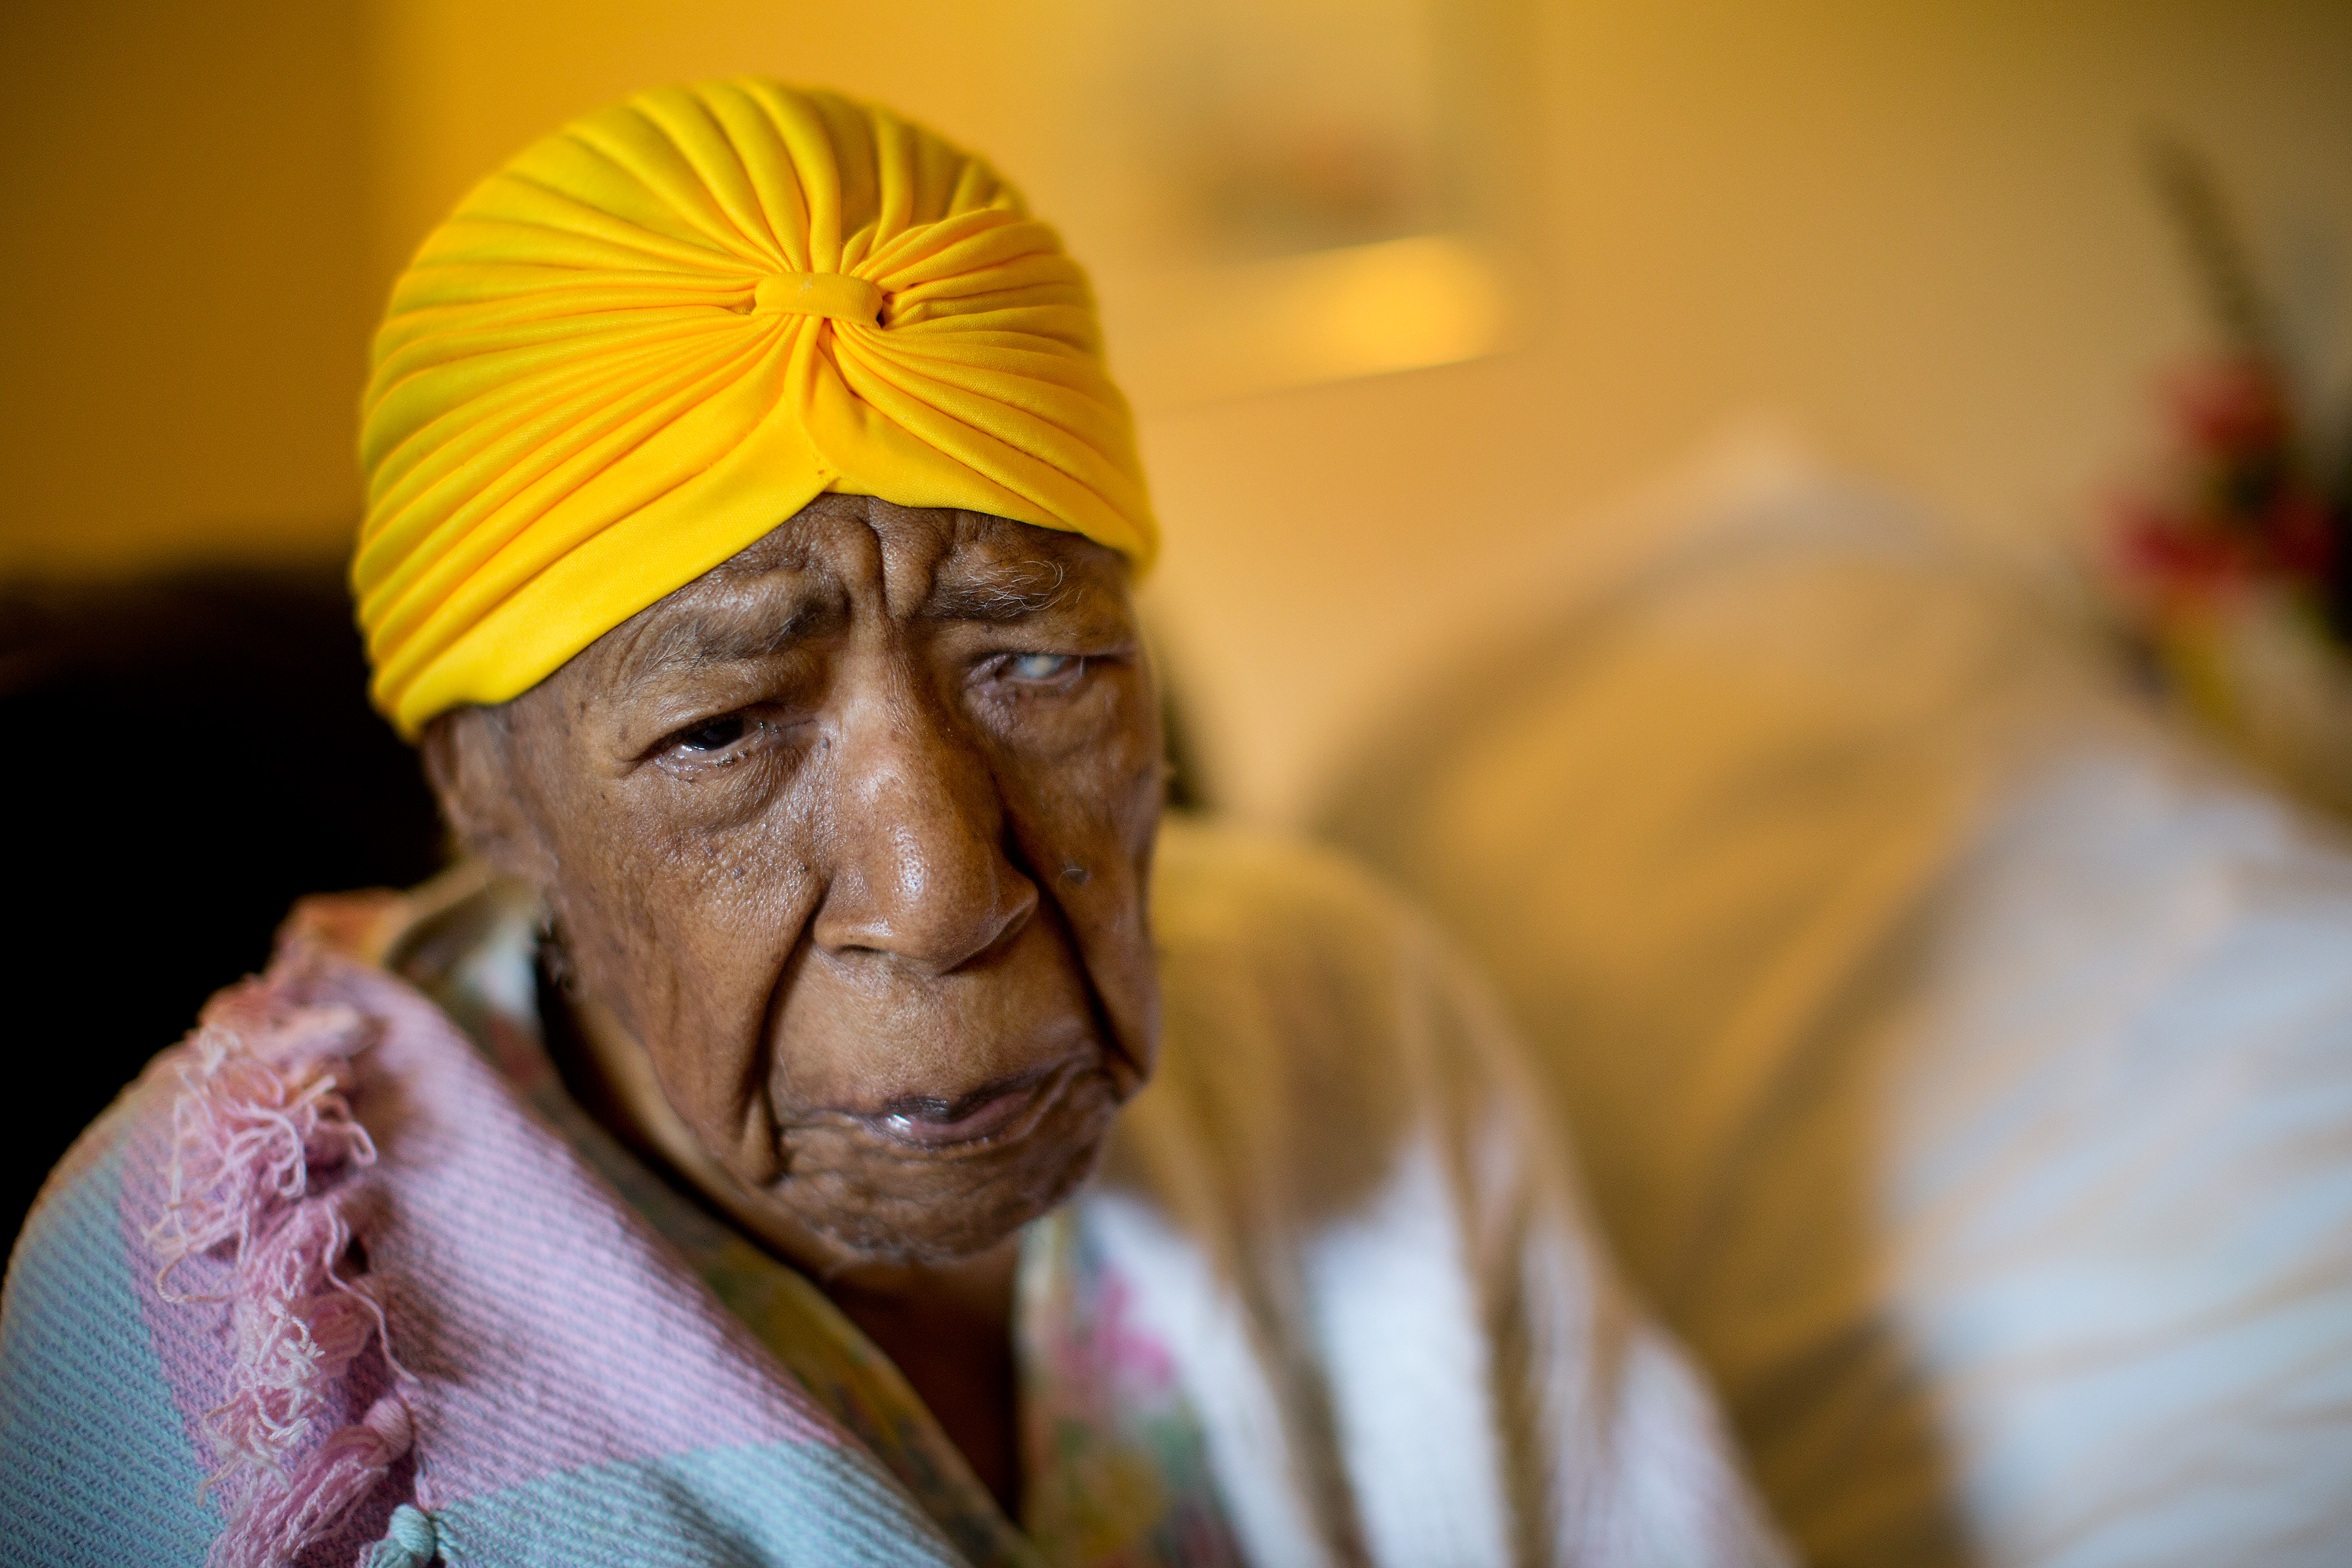 Susannah Mushatt Jones in her home in Brooklyn on June 11, 2014, a few weeks before her 115th birthday.